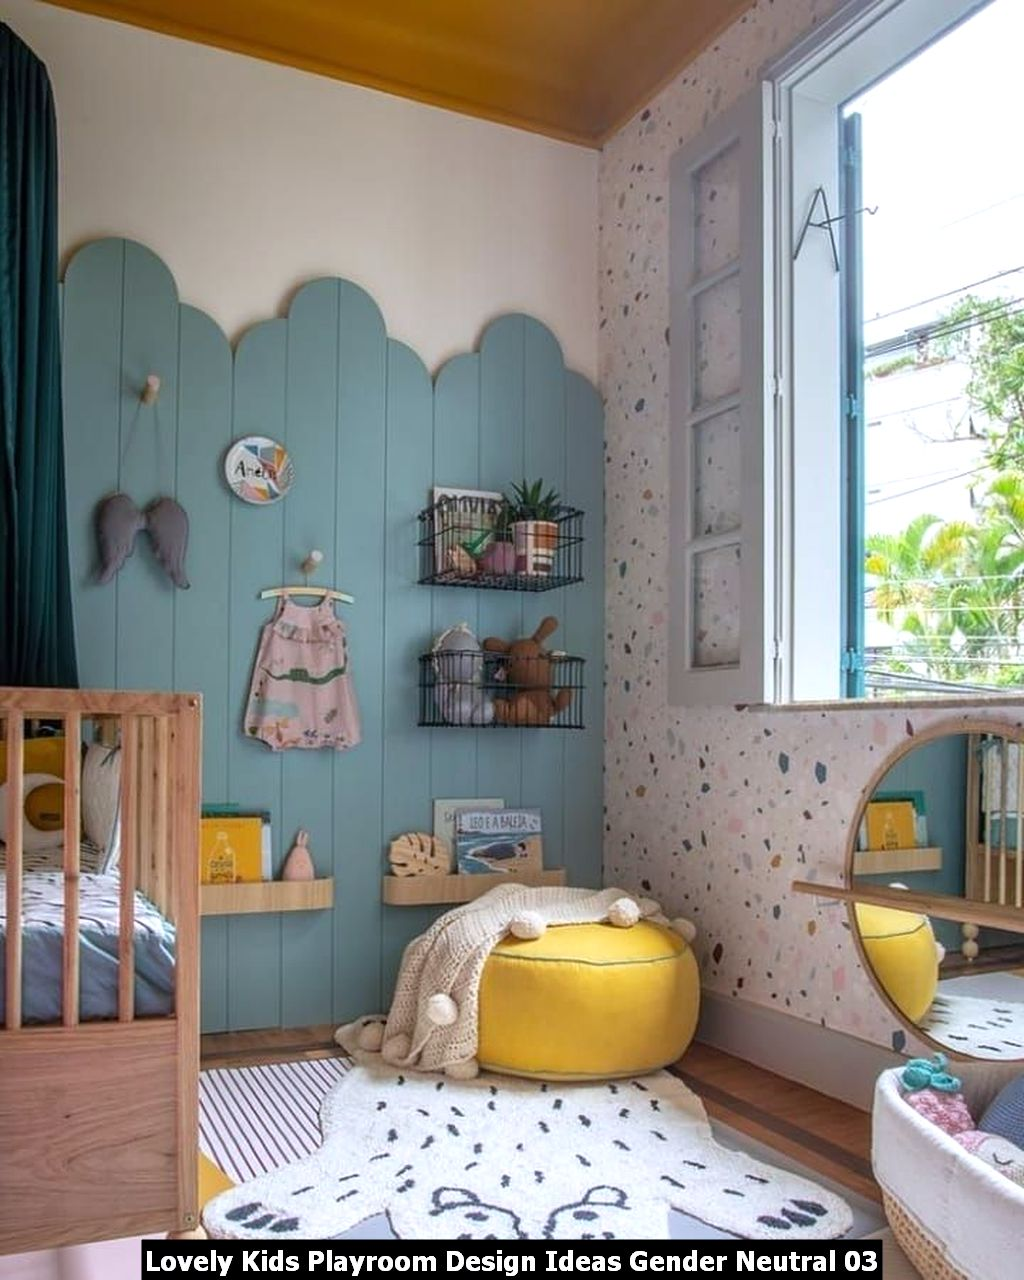 Lovely Kids Playroom Design Ideas Gender Neutral 03